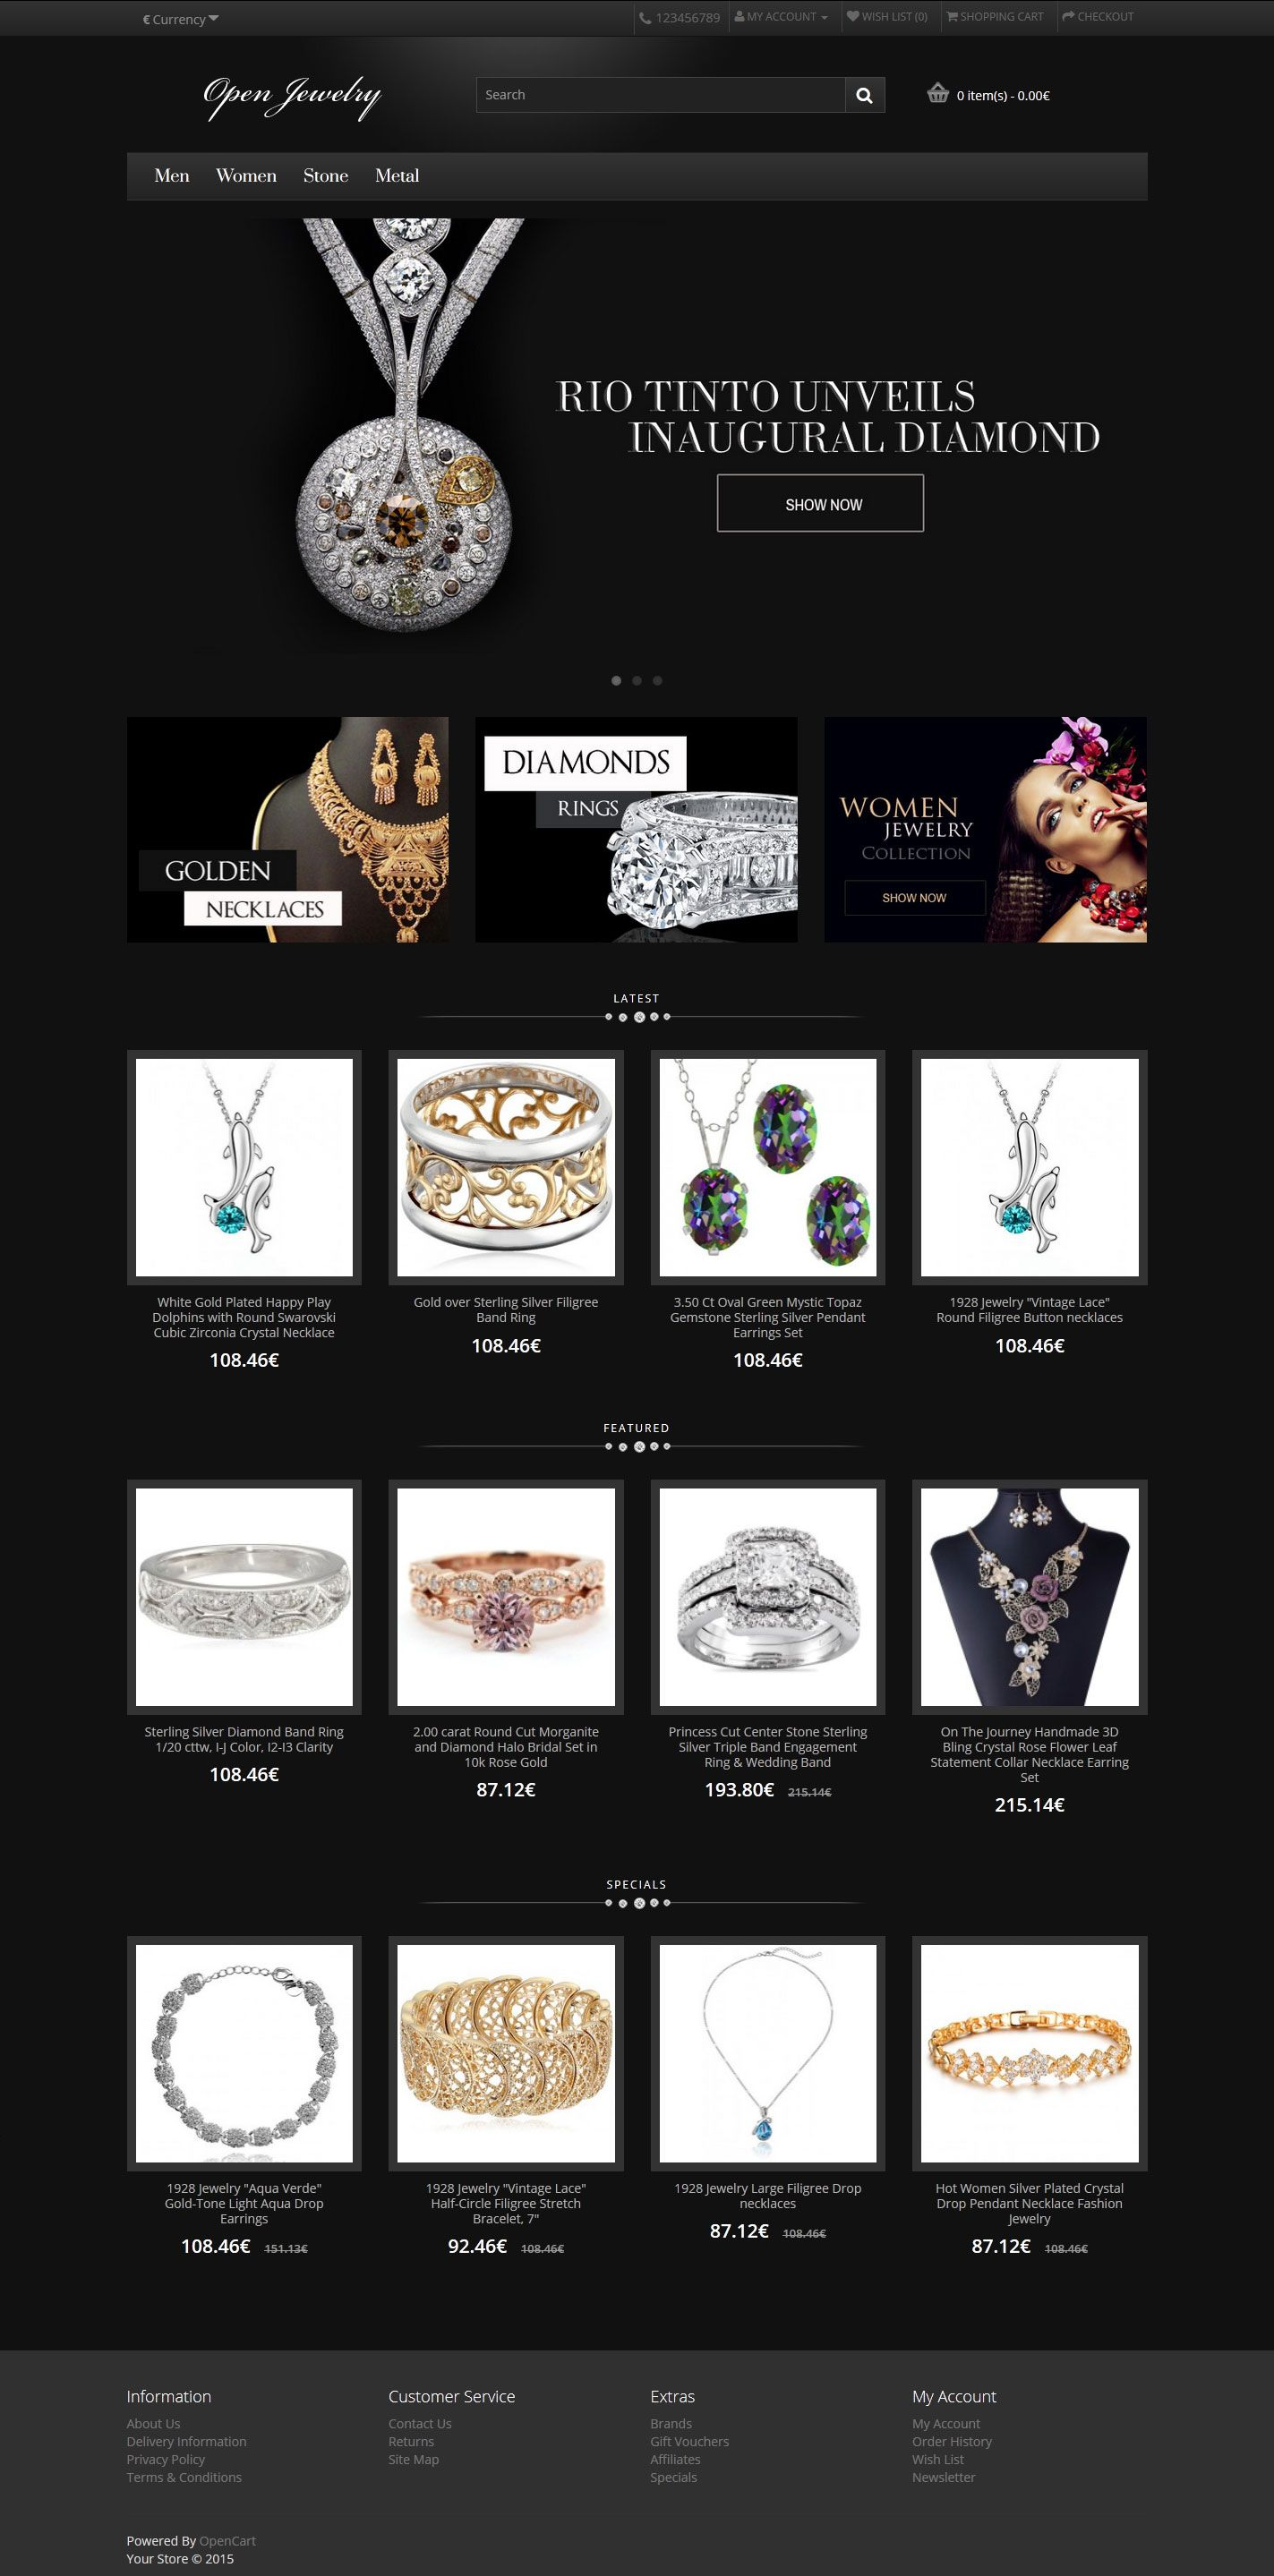 Open Jewelry - Responsive OpenCart Theme Screenshot 1